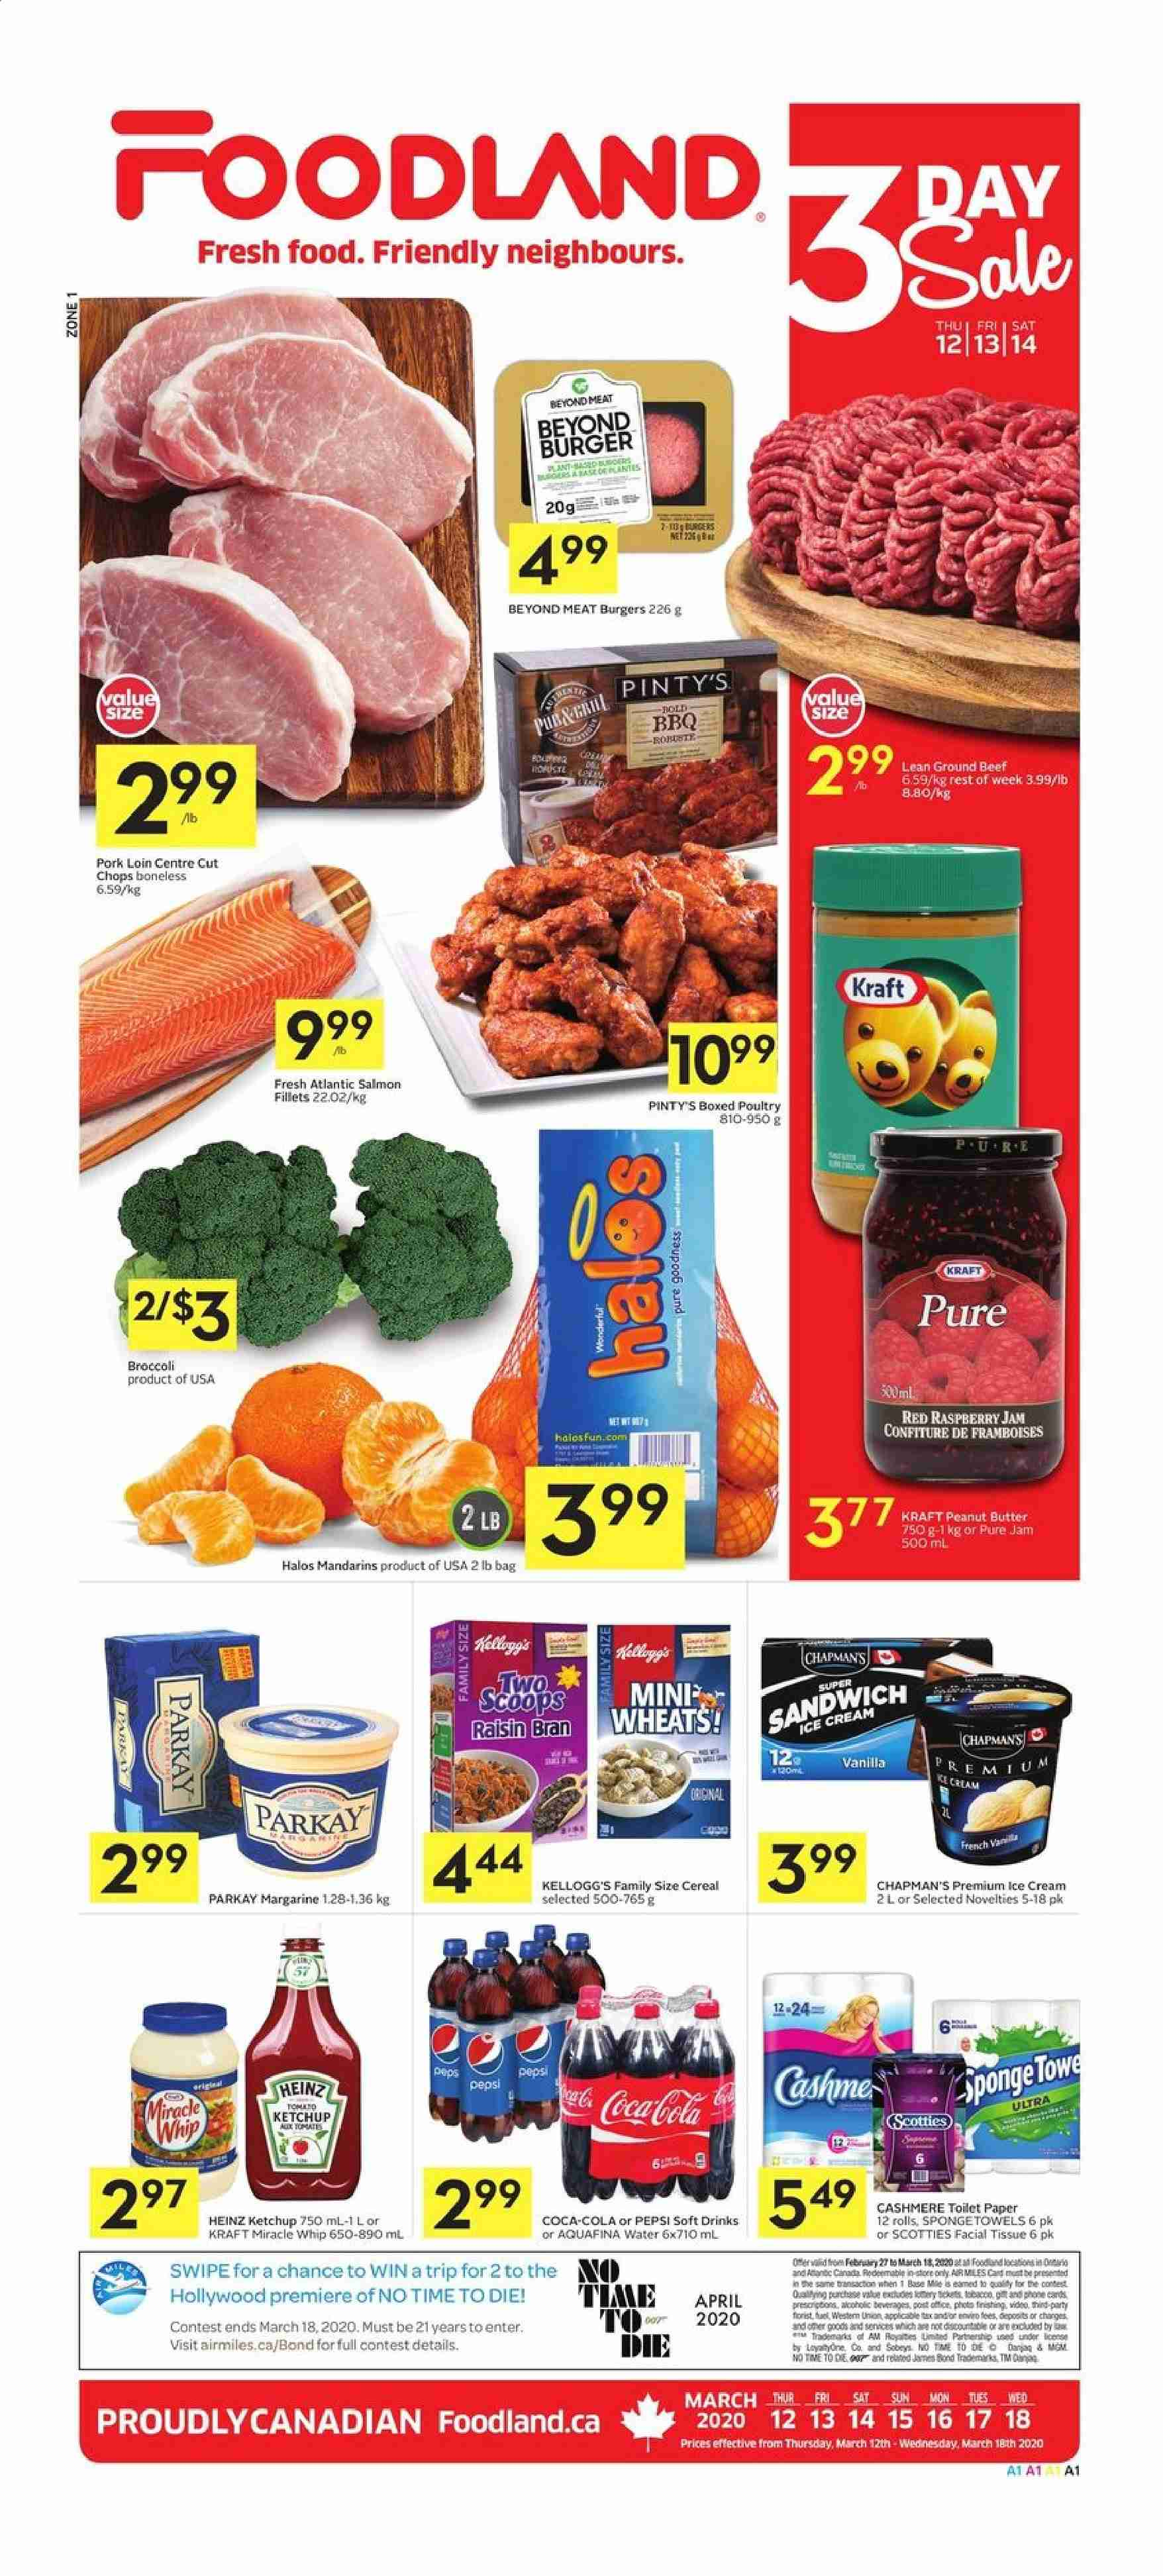 Foodland Flyer  - March 12, 2020 - March 18, 2020. Page 1.